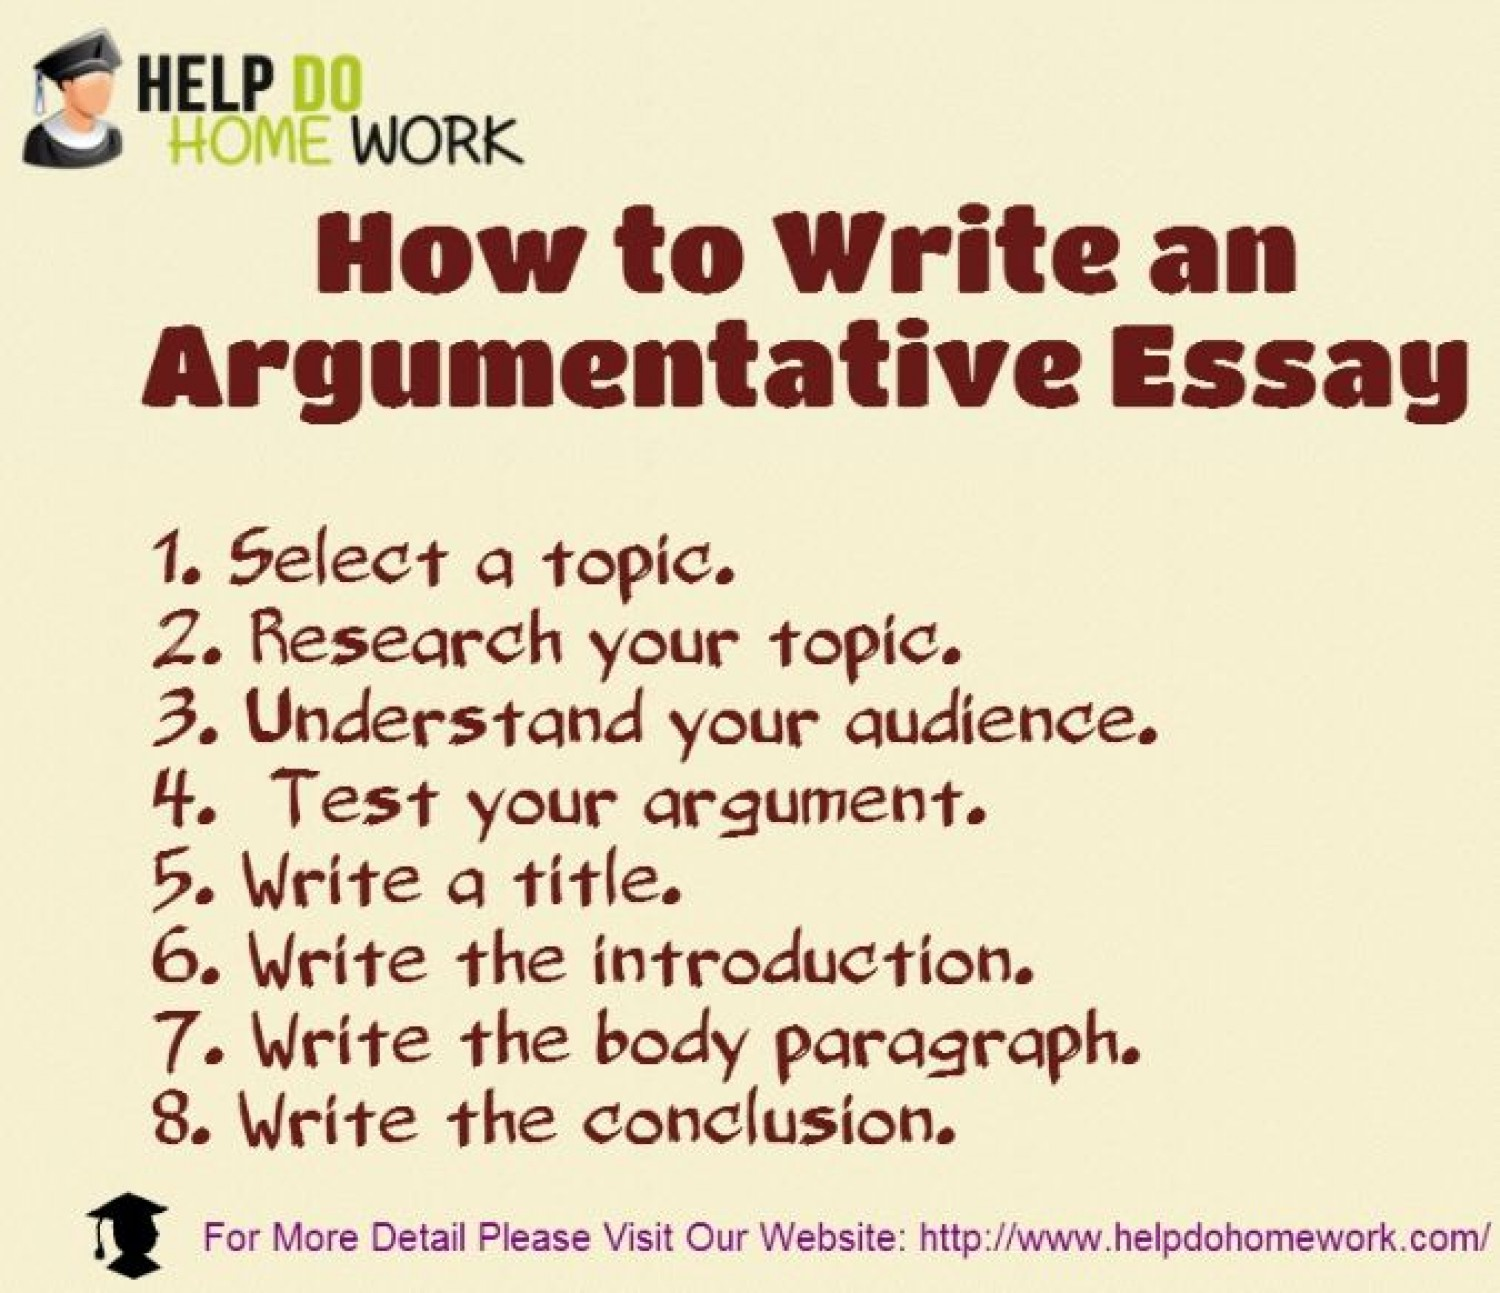 022 Essay Example Argumentativenclusion How To Write An Visual Ly Who Utilize Functional And Utilitarian Approach For Your Academic Work 53b0d9bea1f6e Ap Lang Introduction Incredible Argumentative Conclusion Format Paragraph Sample Full